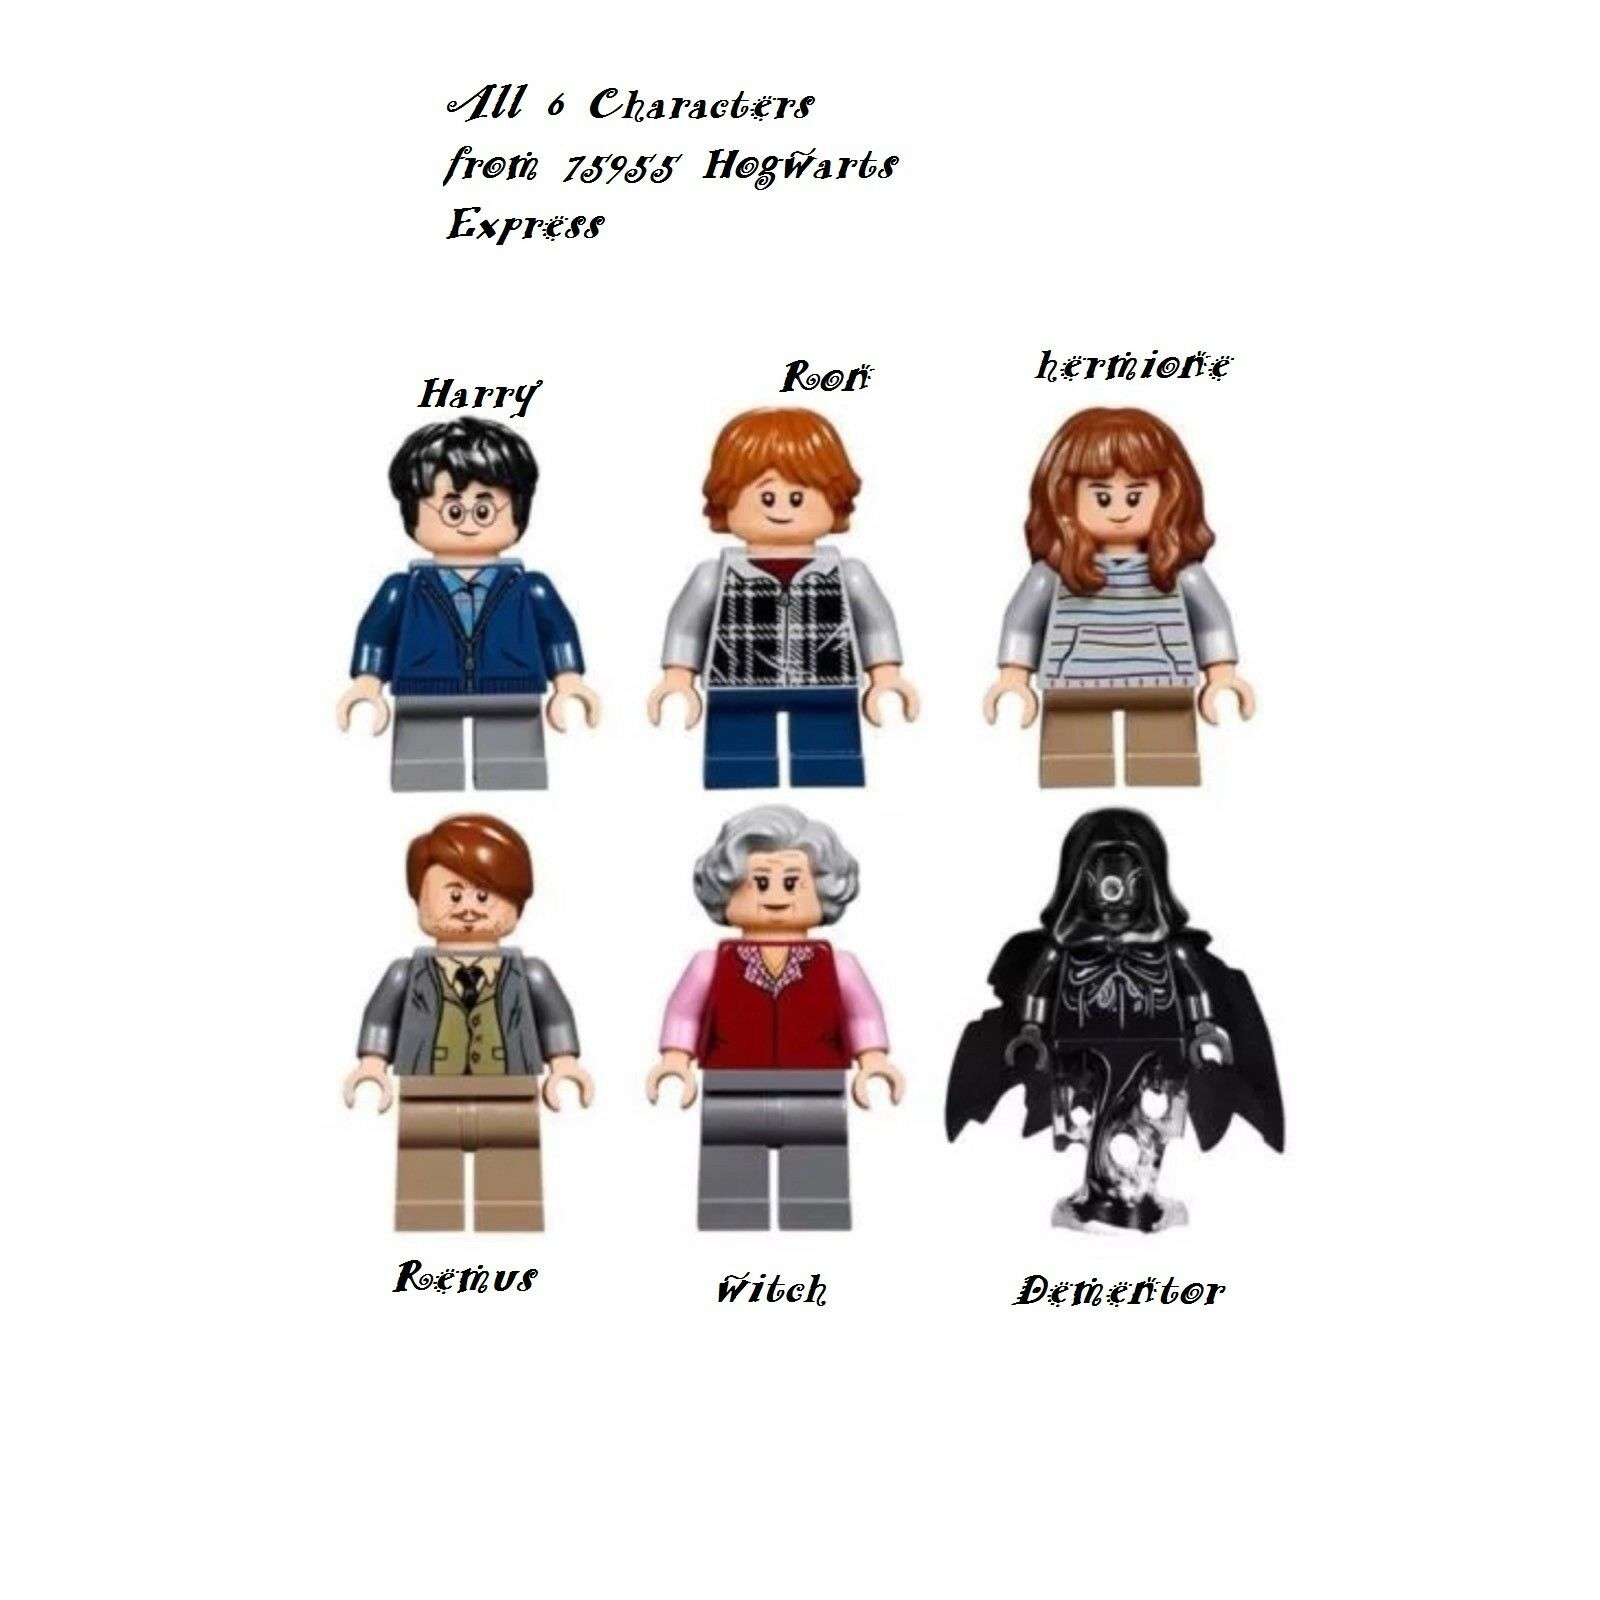 Lego harry potter Hogwarts Express as photo 6 Minifigures from 75955